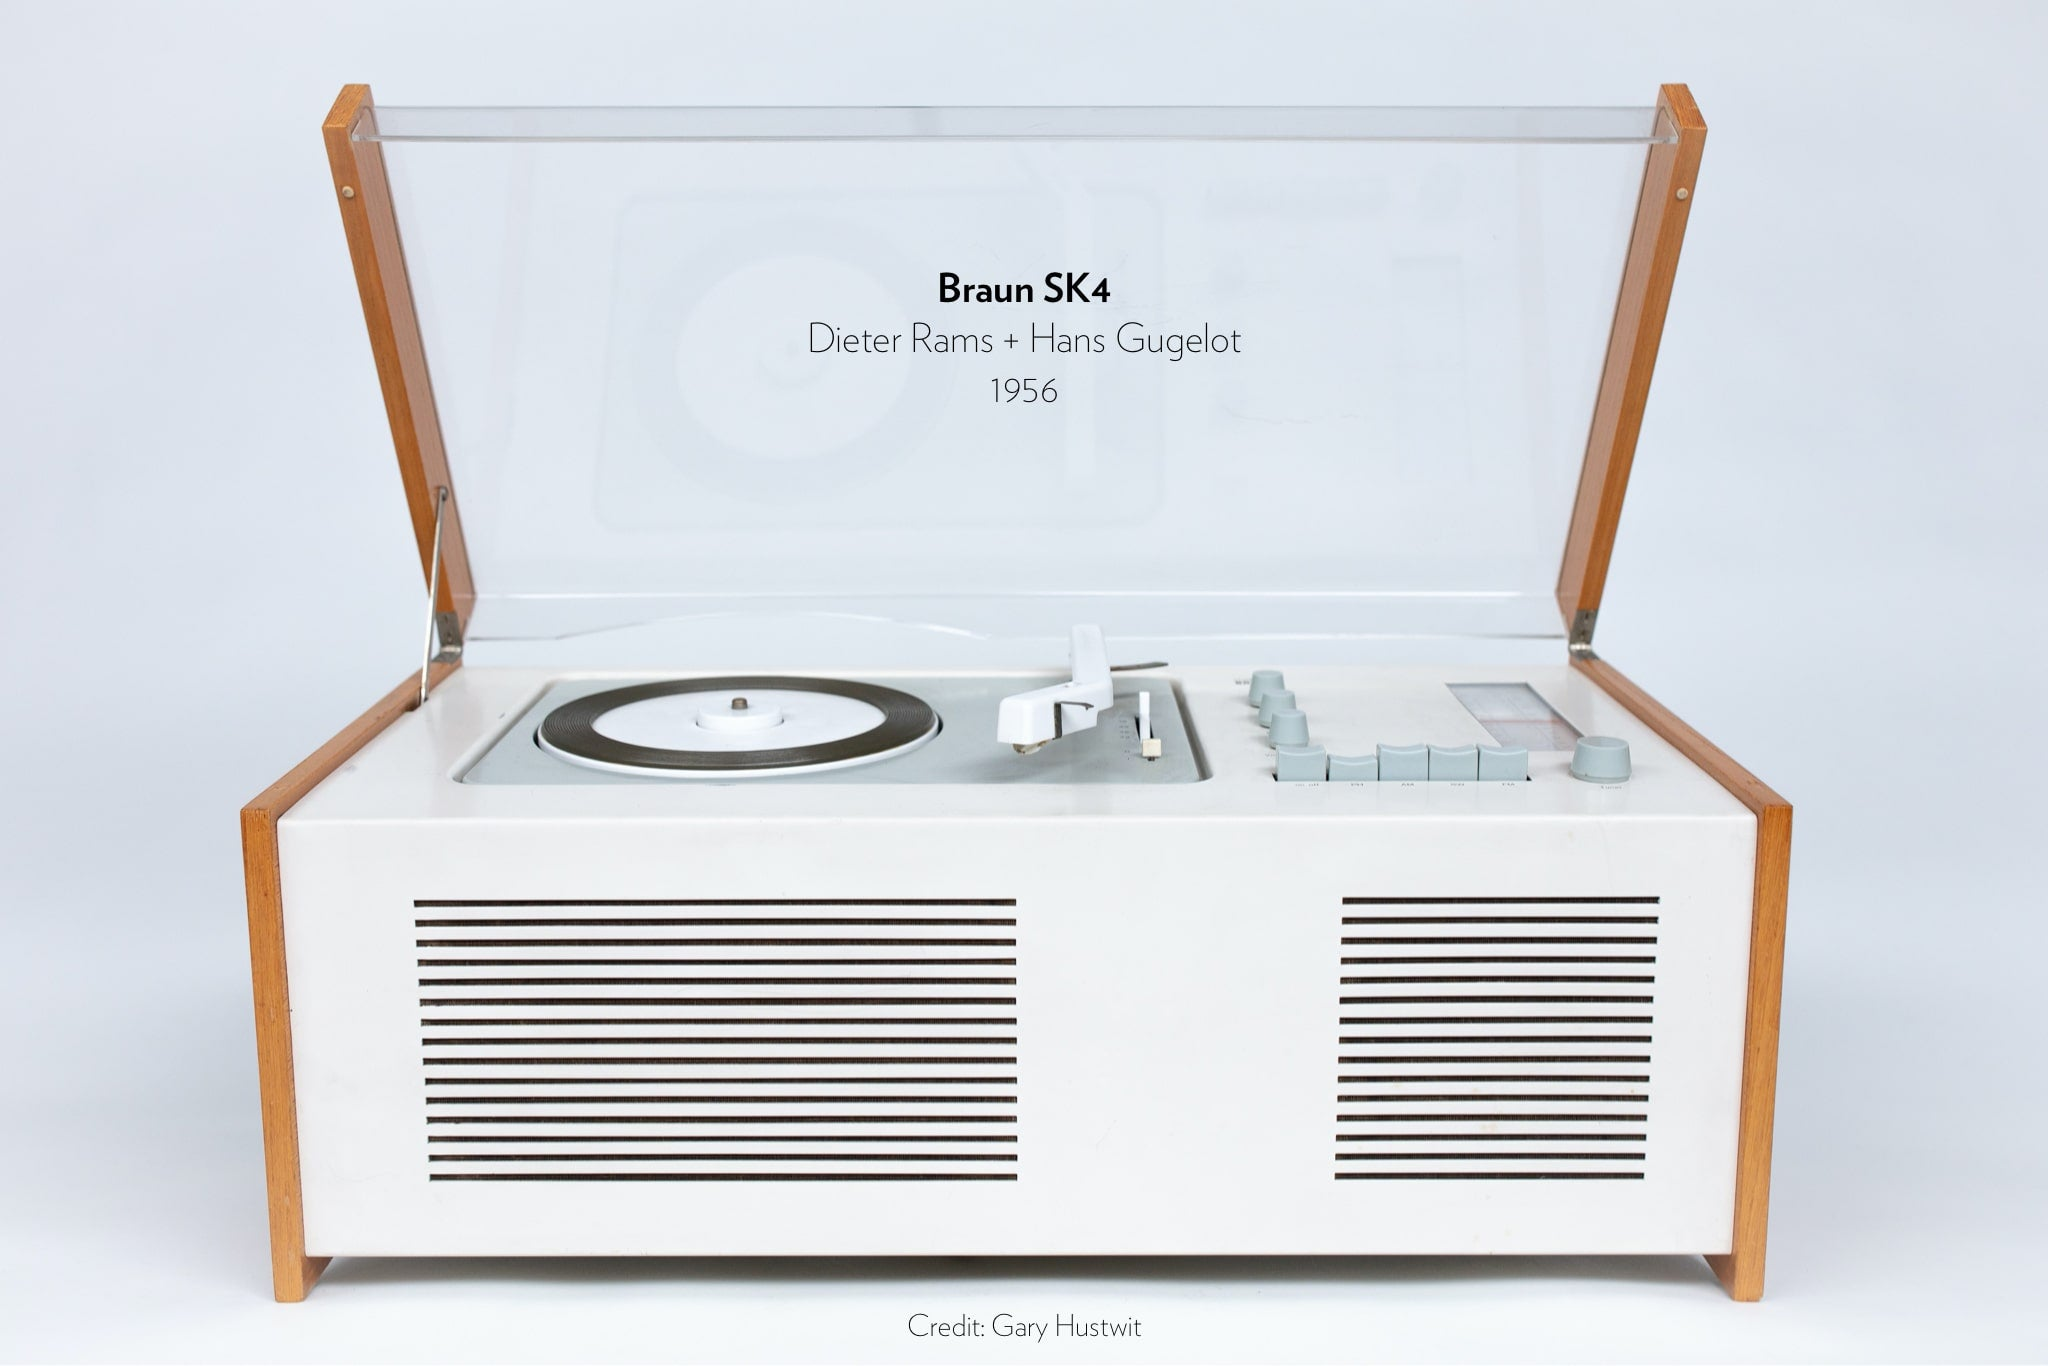 Braun SK4 designed by Dieter Rams and Hans Gugelot in 1956.